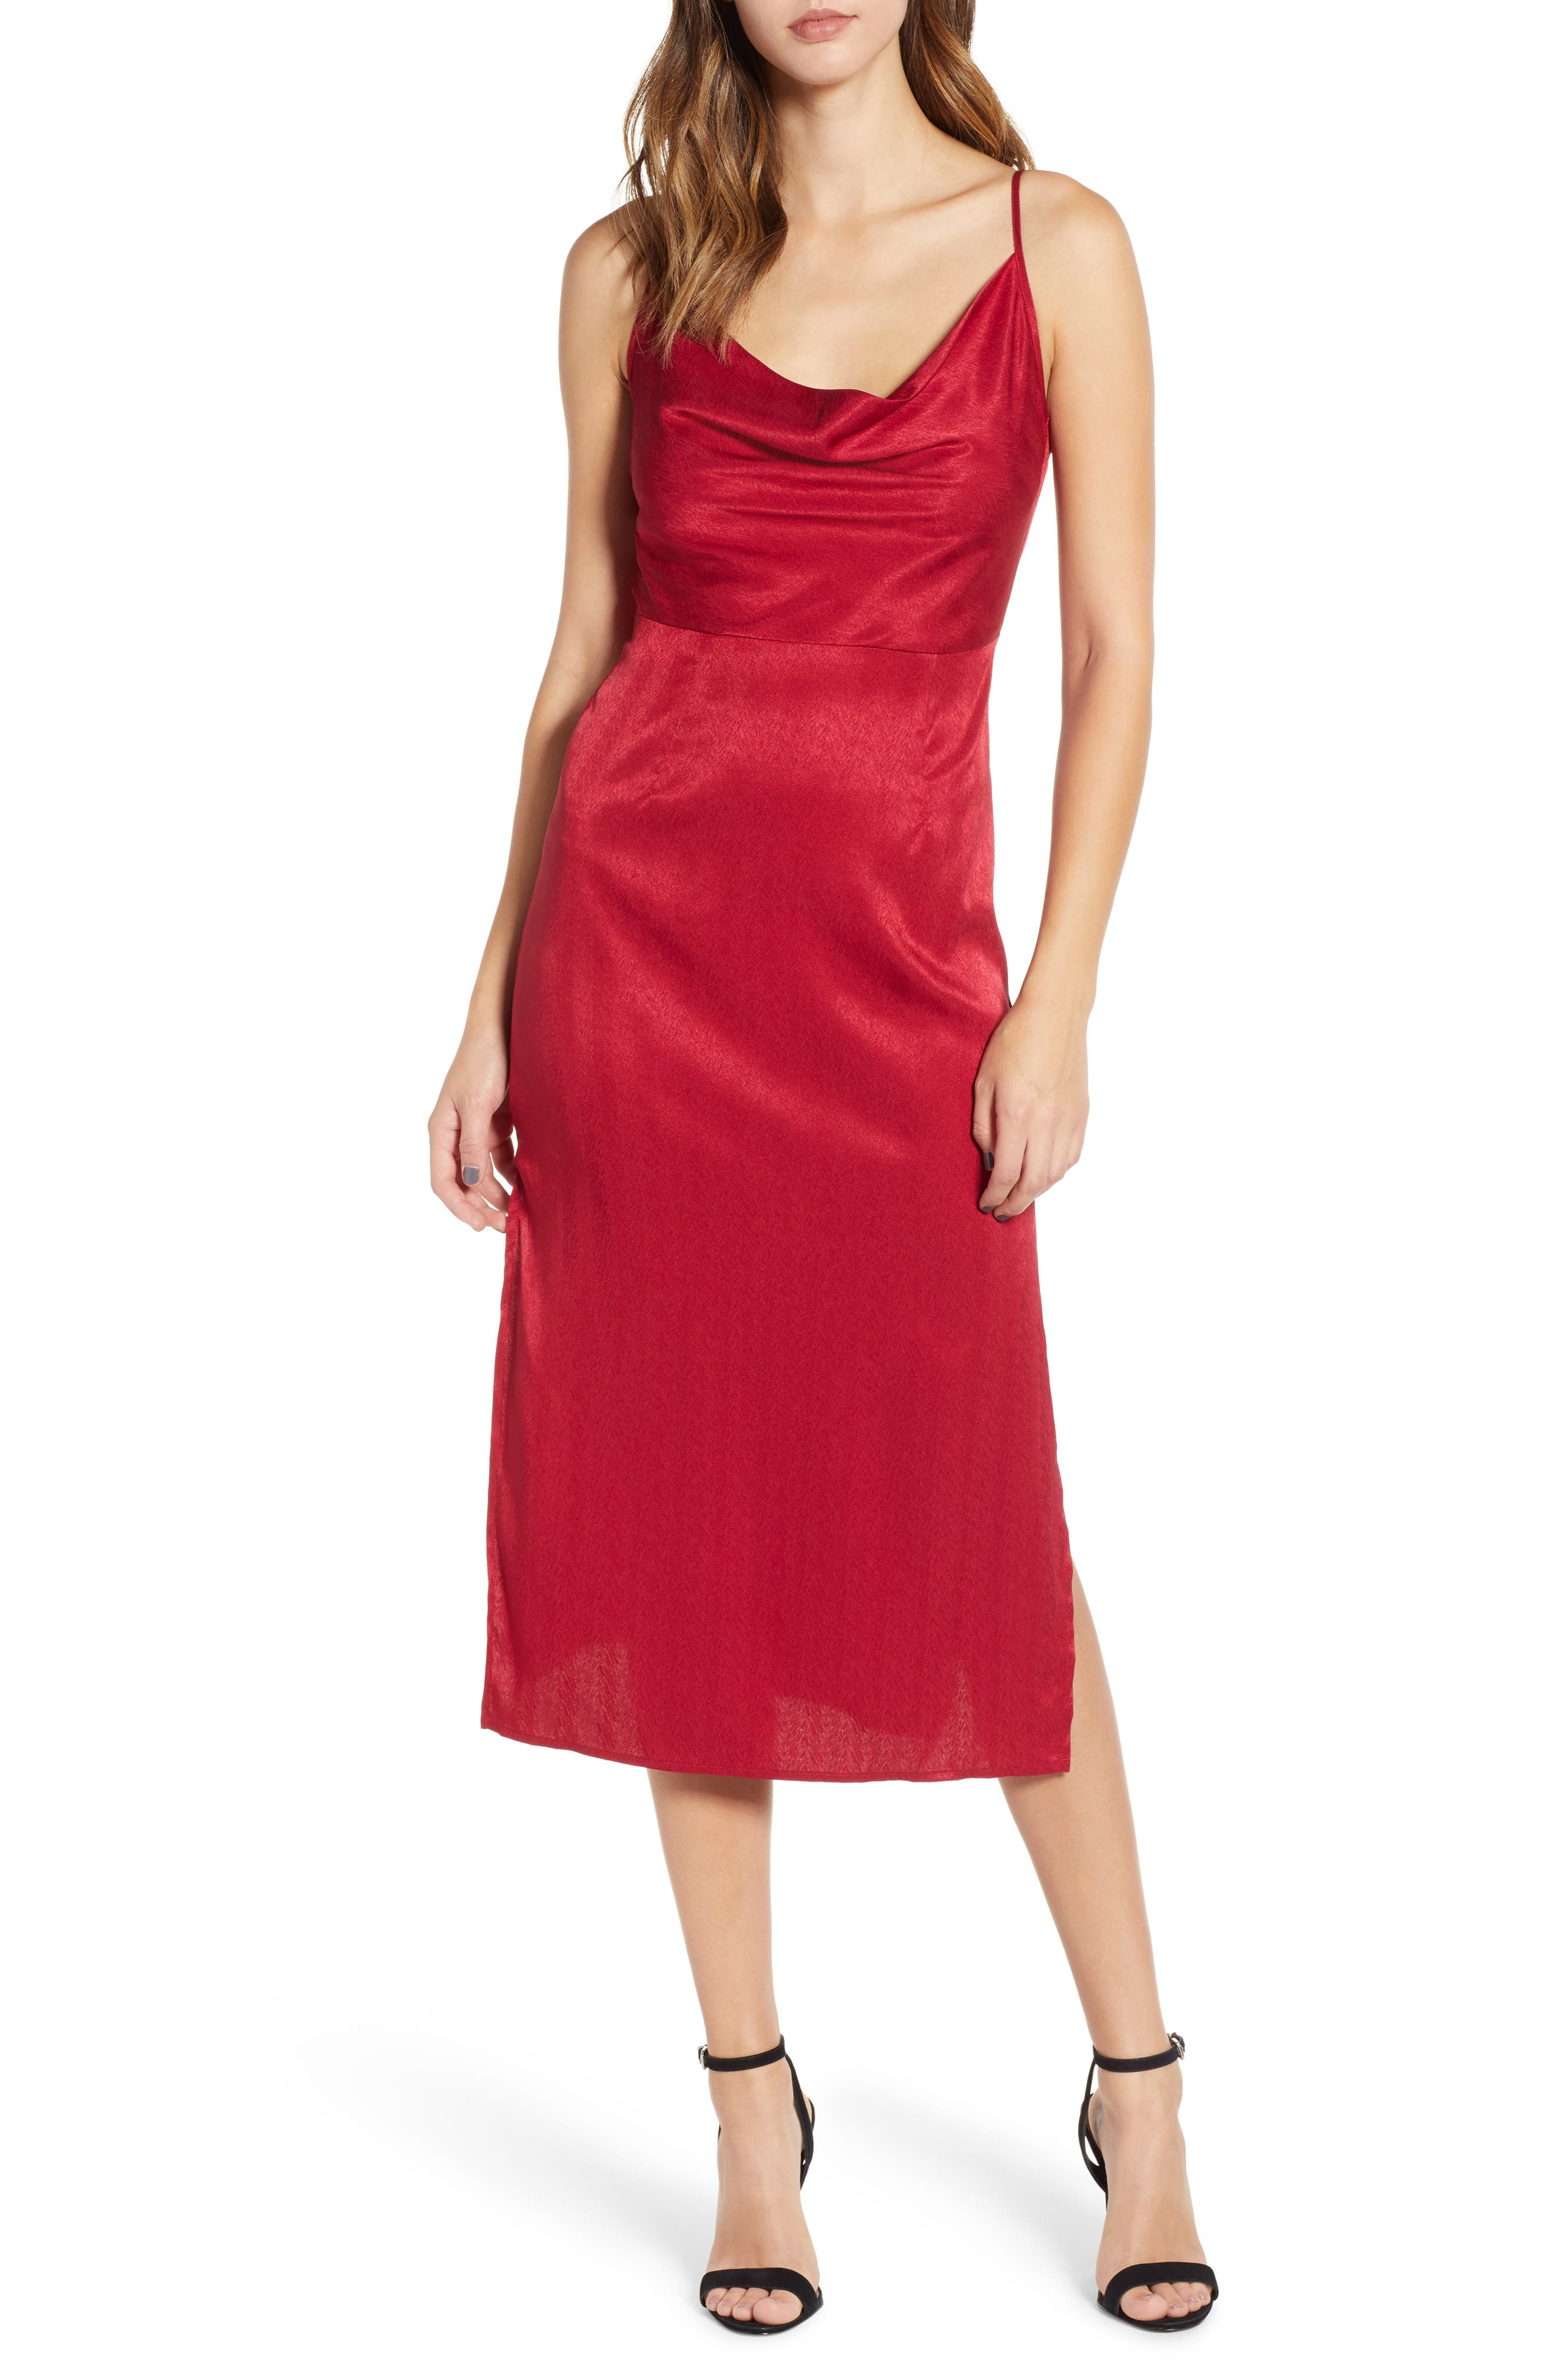 Lotti Cowl Neck Midi Dress,                         Main,                         color, CHERRY